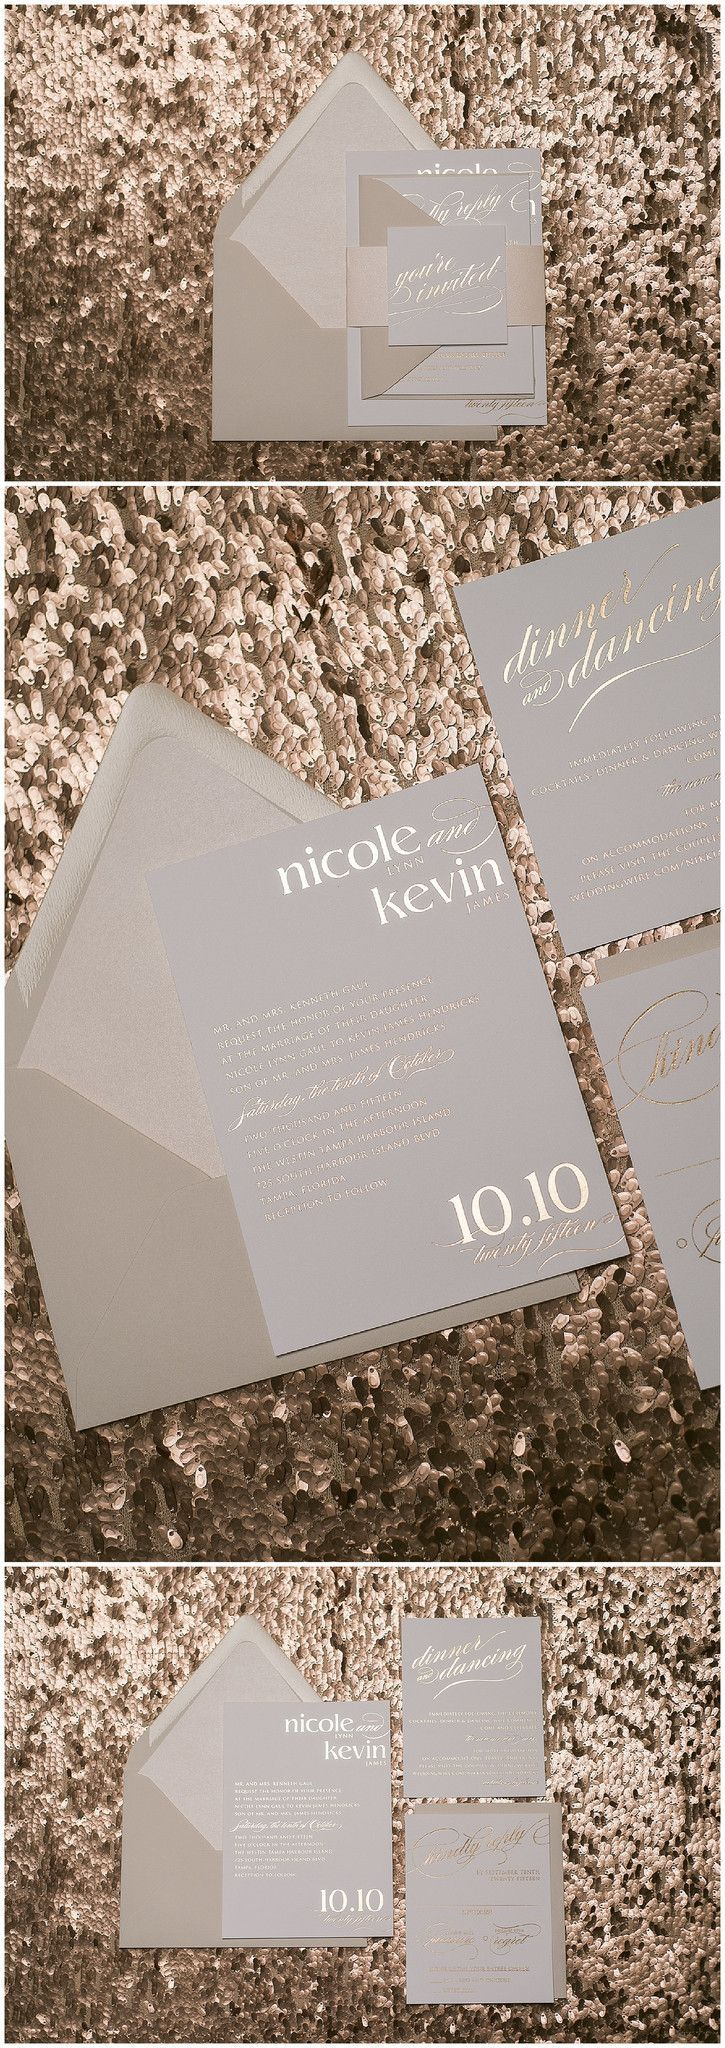 size of response cards for wedding invitations%0A Our Exquisite CYNTHIA Suite Rose Gold and Blush Neutral Color Scheme Wedding  Invitations